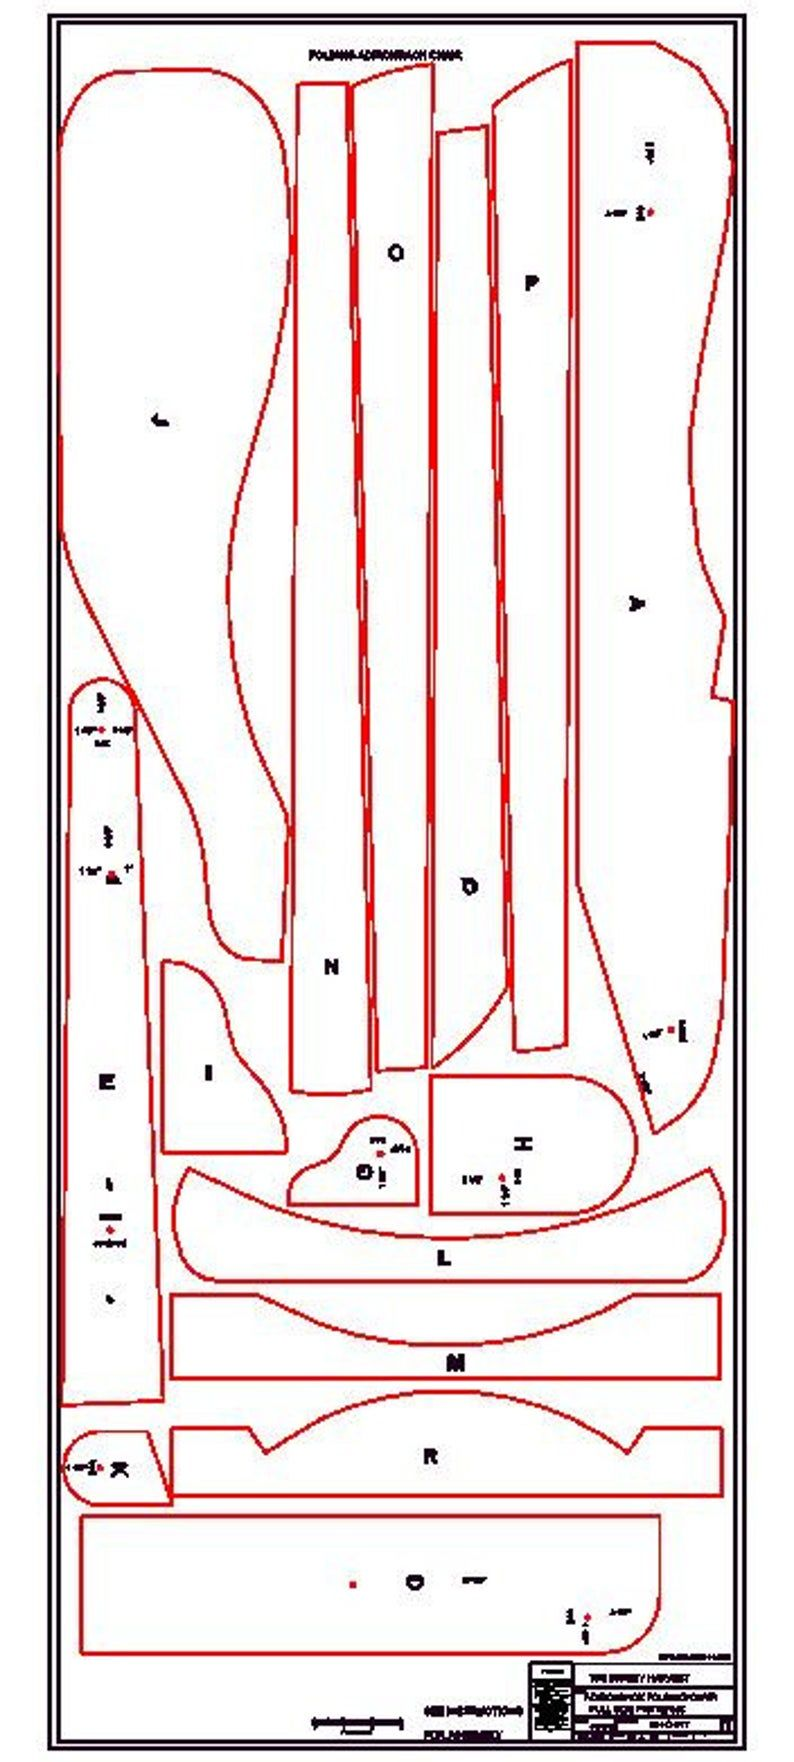 Folding adirondack chair plans dwg files for cnc